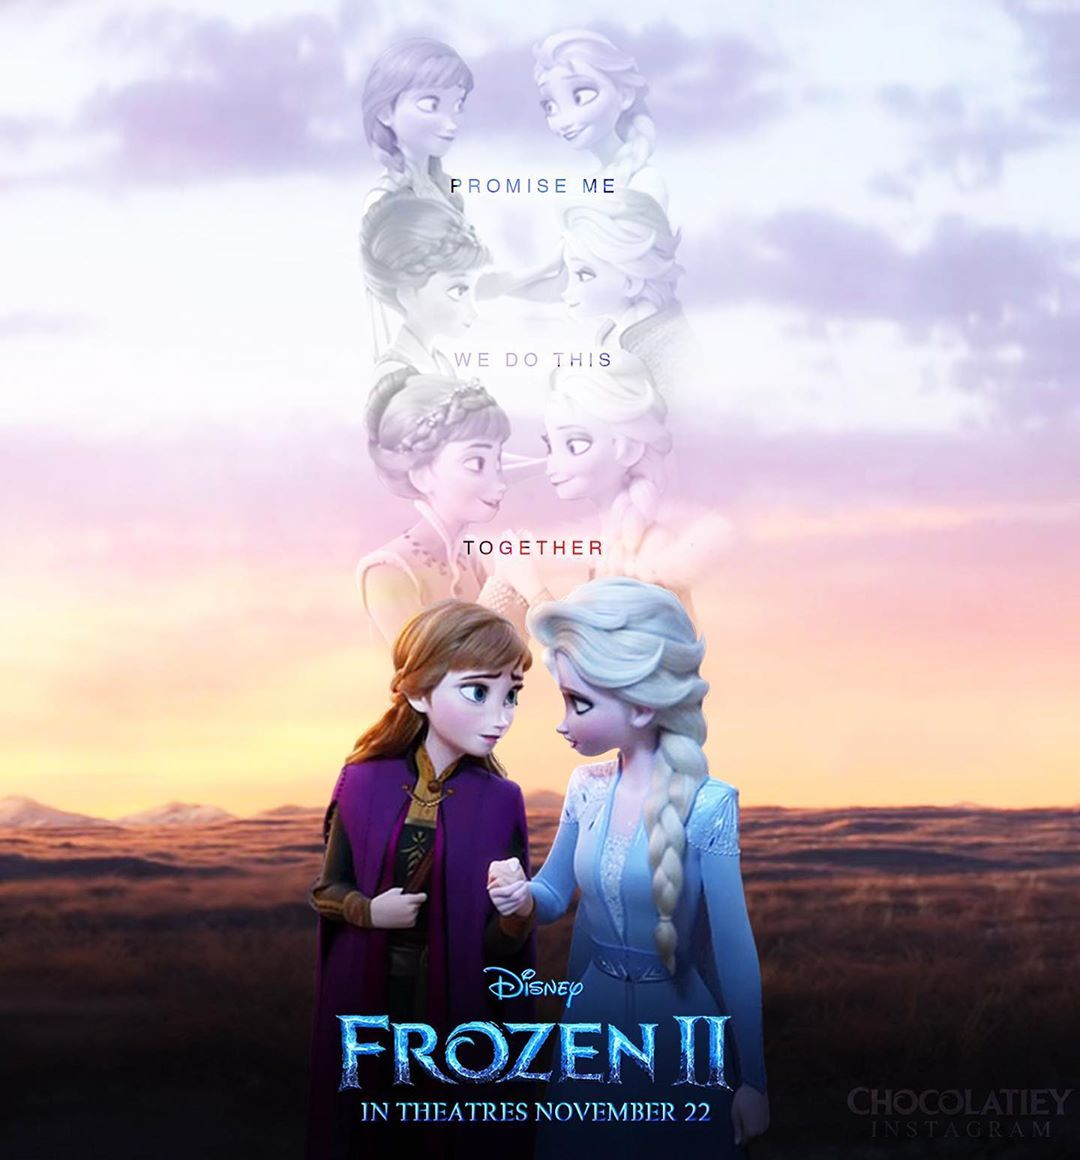 Reynia Actually I M Anna On Instagram Stronger Together A Really Emotional Fanmade Pos Disney Princess Frozen Frozen Disney Movie Disney Frozen Elsa